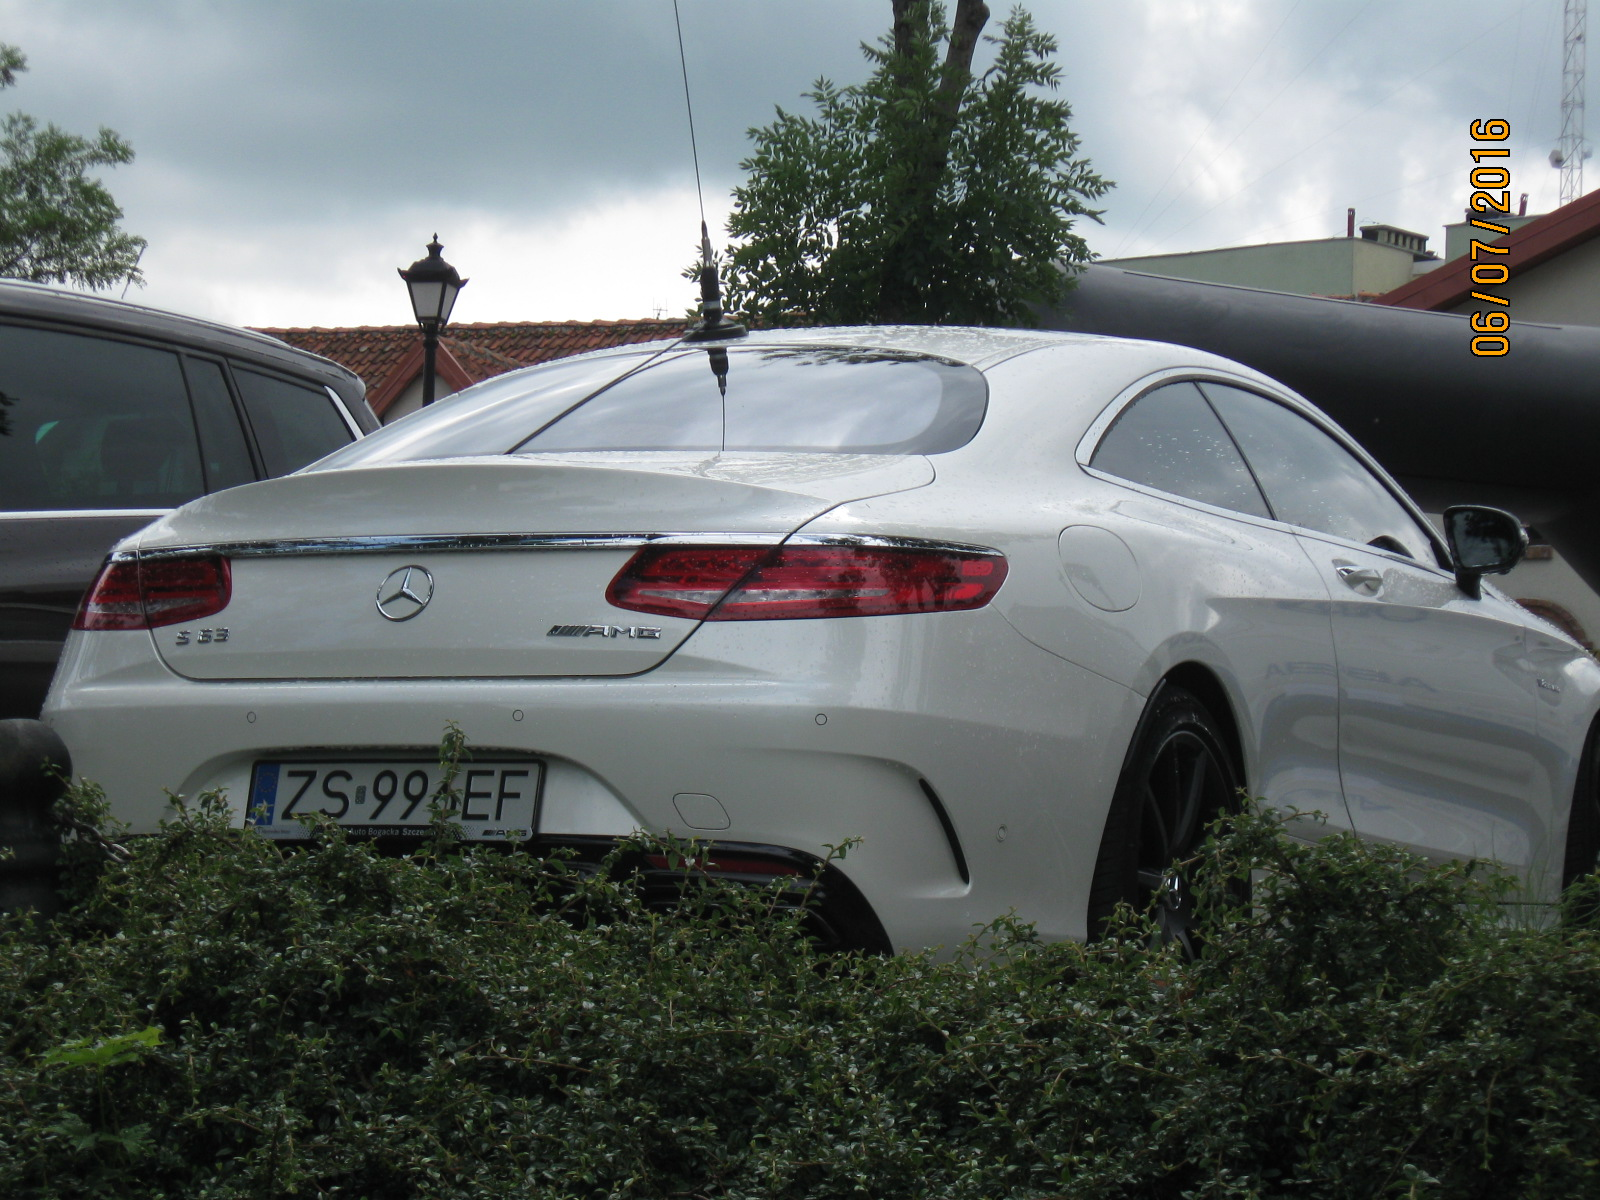 http://124coupe.pl/hosting/images/1467813858.jpg